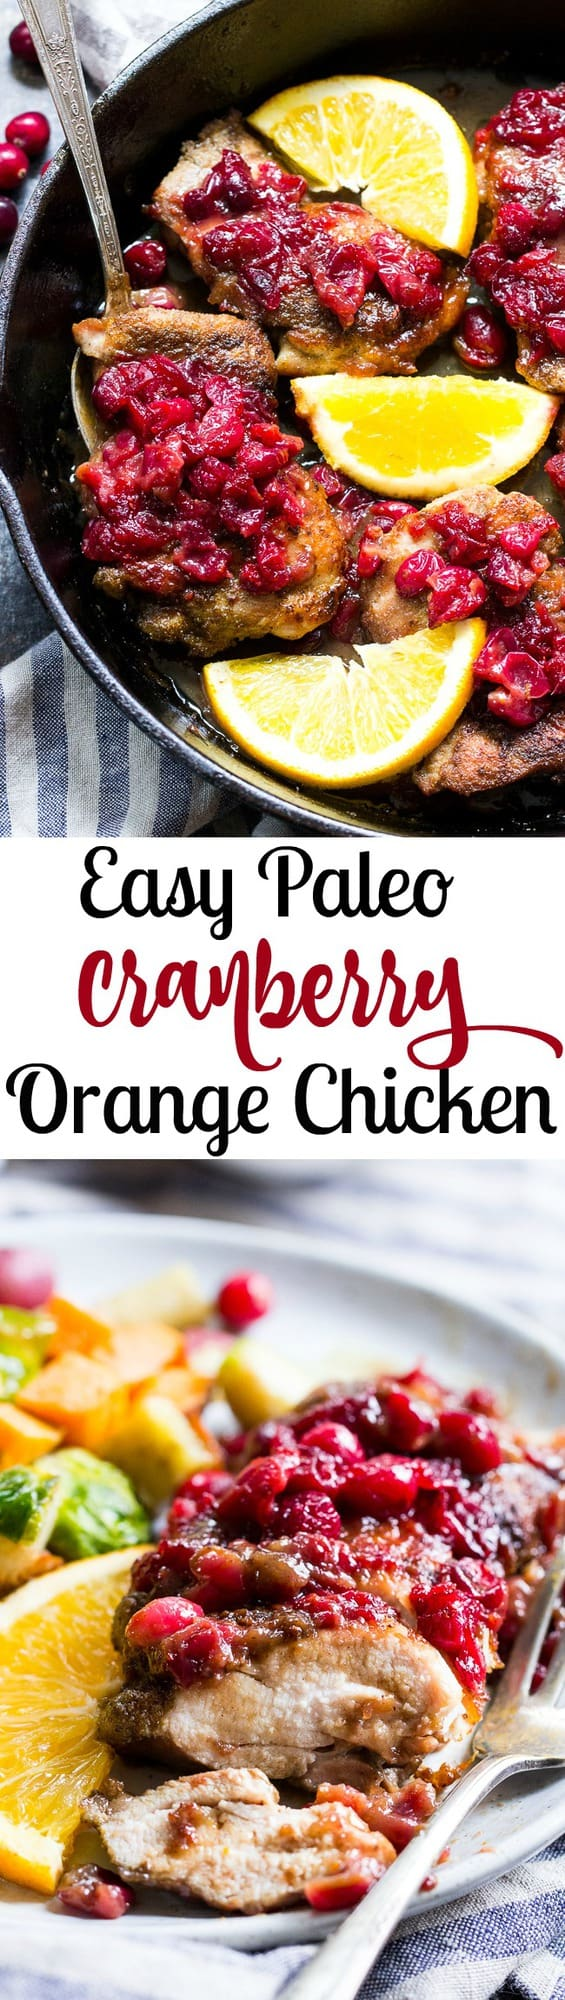 We take crisp, savory spiced chicken thighs and a healthy, refined sugar free orange cranberry sauce and bake them together to delicious perfection!  This Paleo Orange Cranberry Chicken is easy to make, gluten-free, dairy-free, and has a Whole30 friendly option.